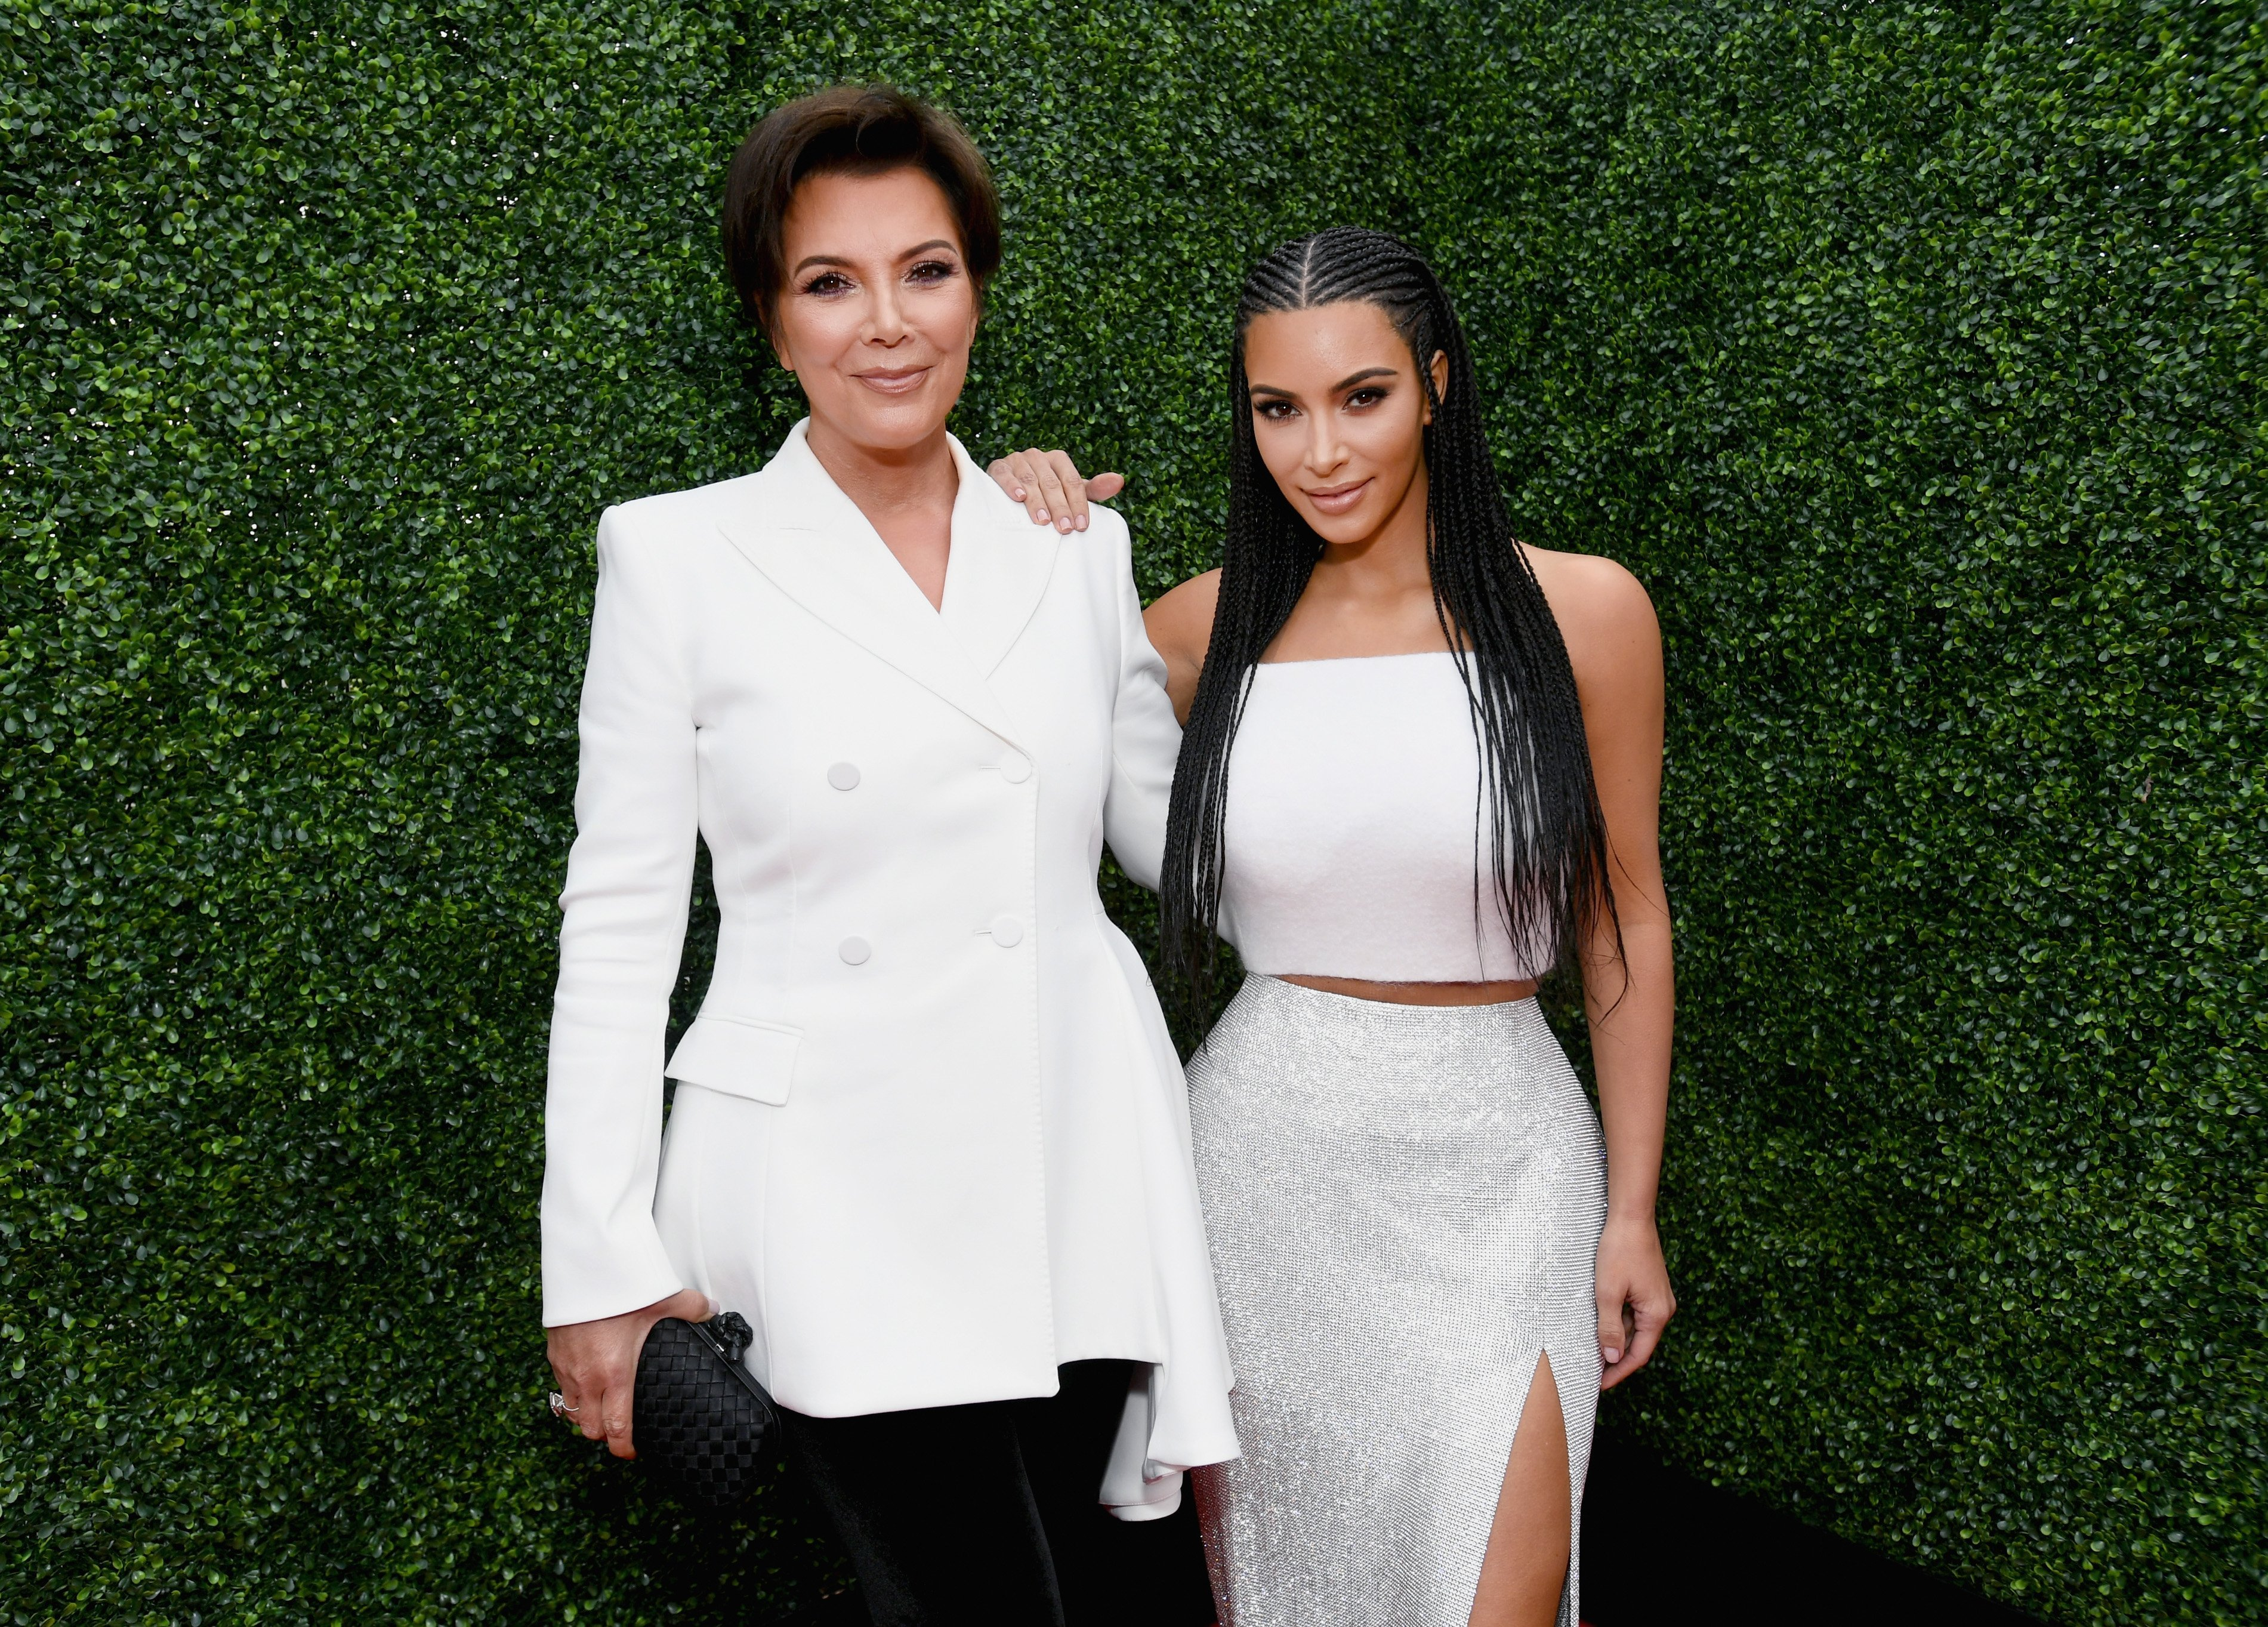 Kris Jenner (L) and Kim Kardashian attend the 2018 MTV Movie And TV Awards at Barker Hangar on June 16, 2018, in Santa Monica, California. | Source: Getty Images.